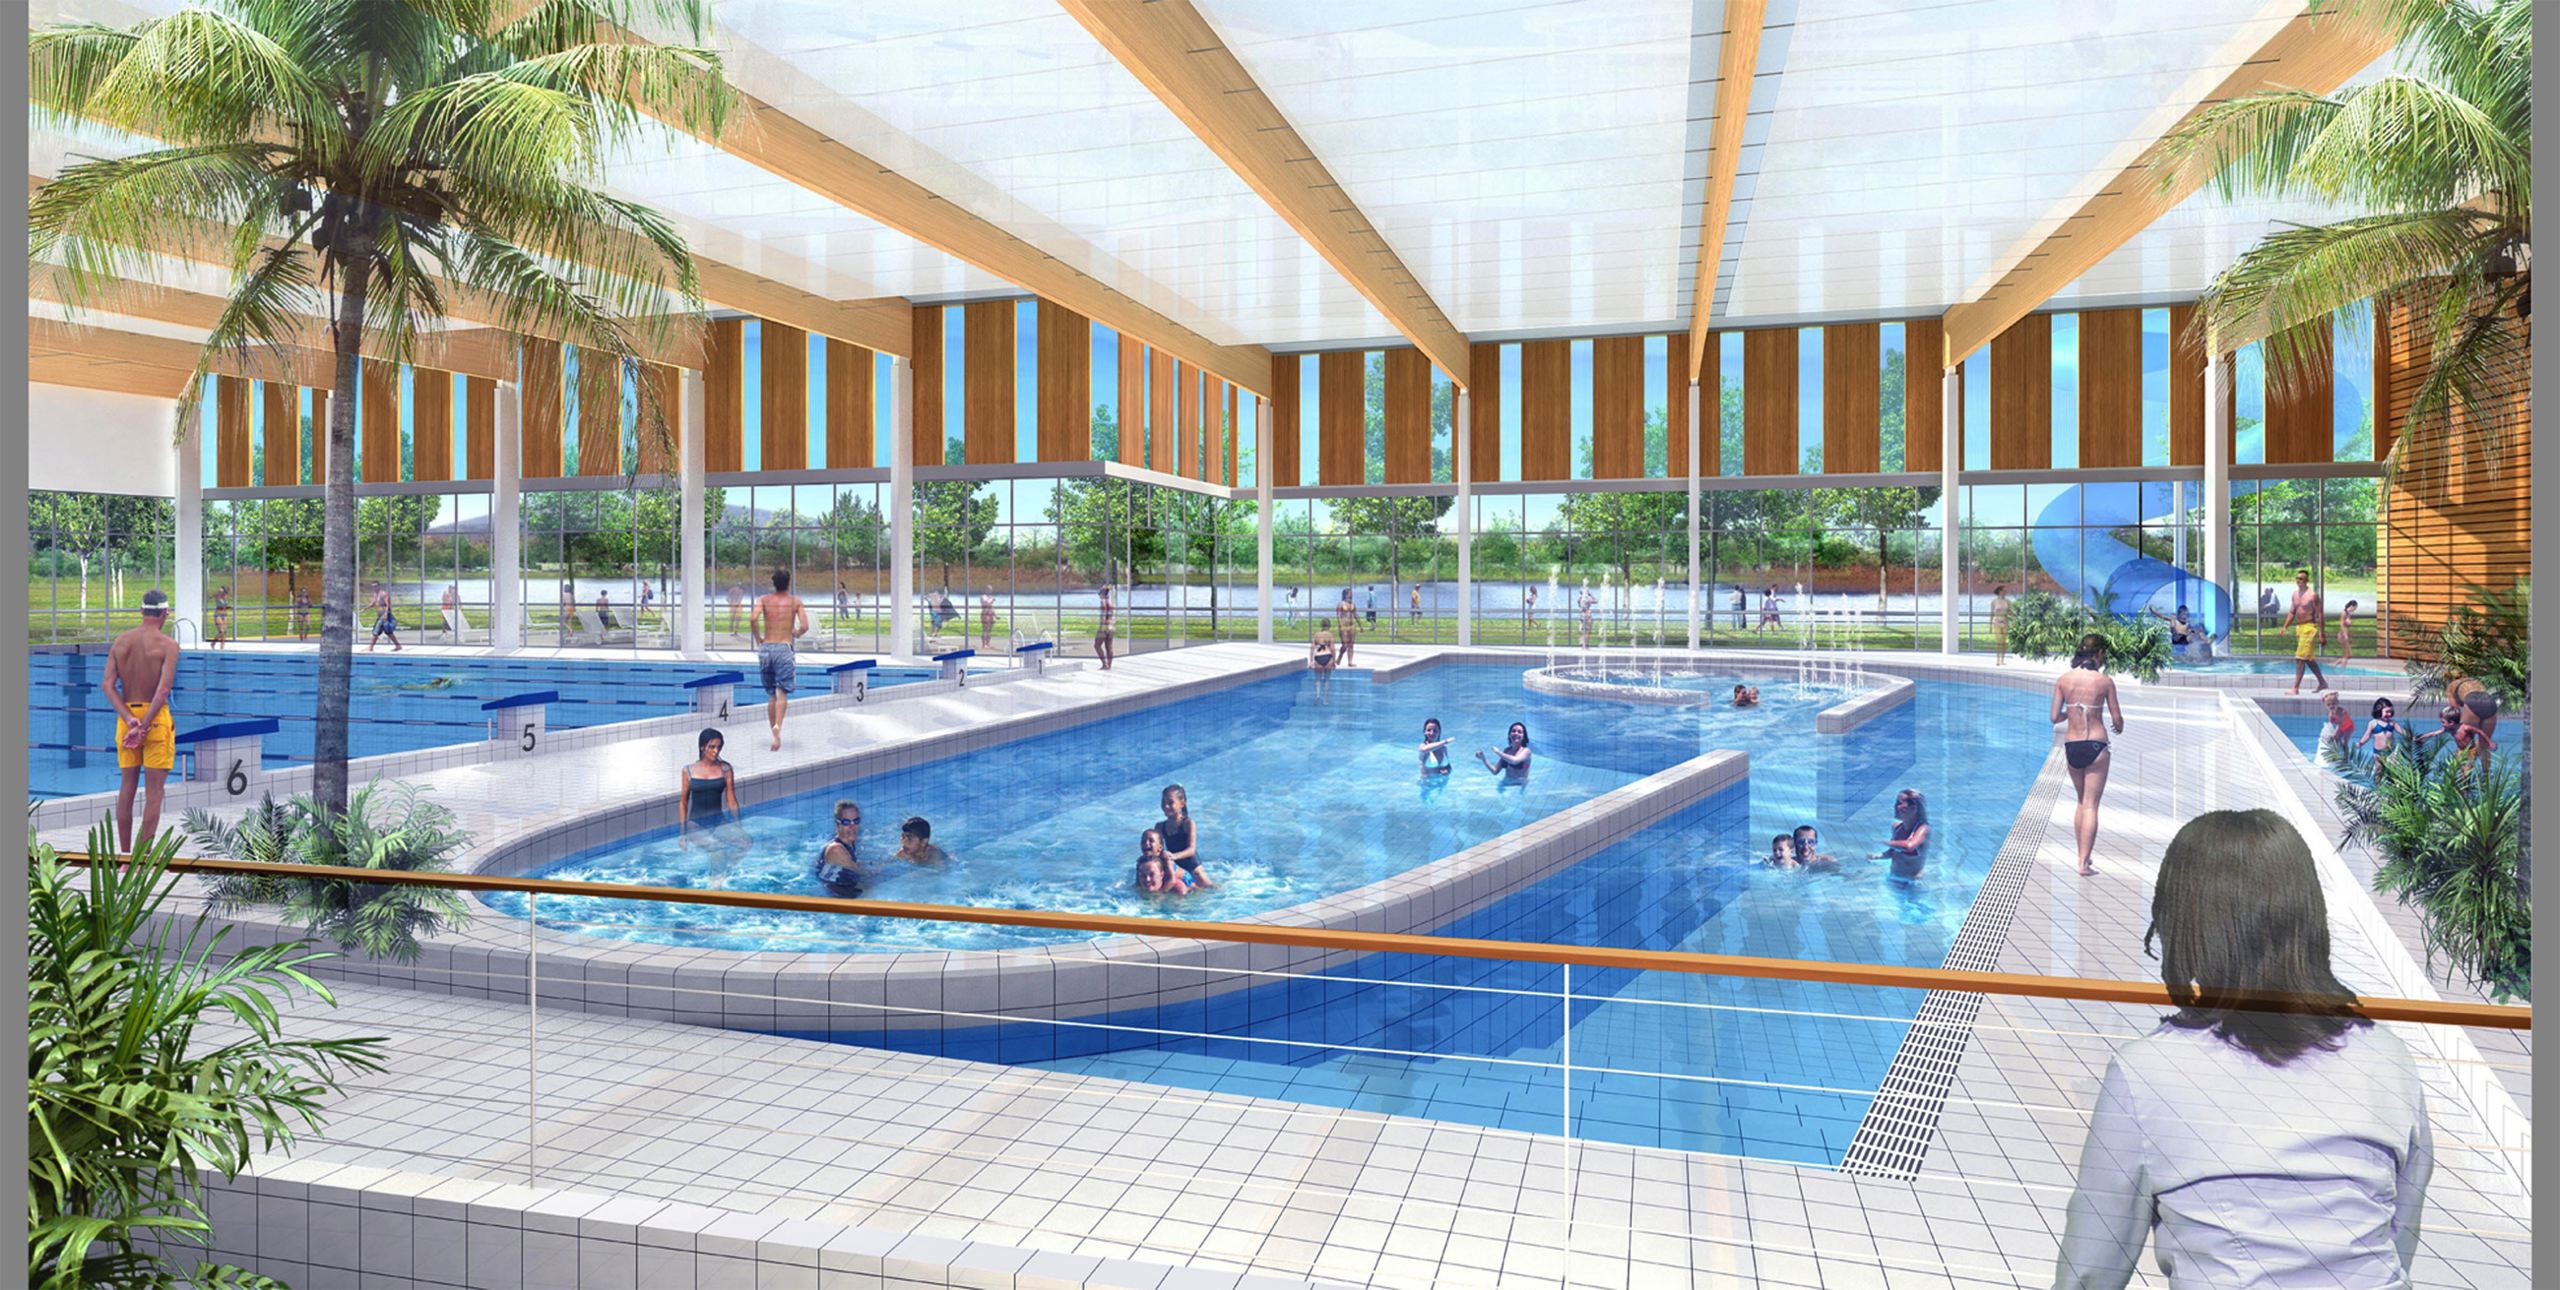 Th matique rca a for Piscine brumath